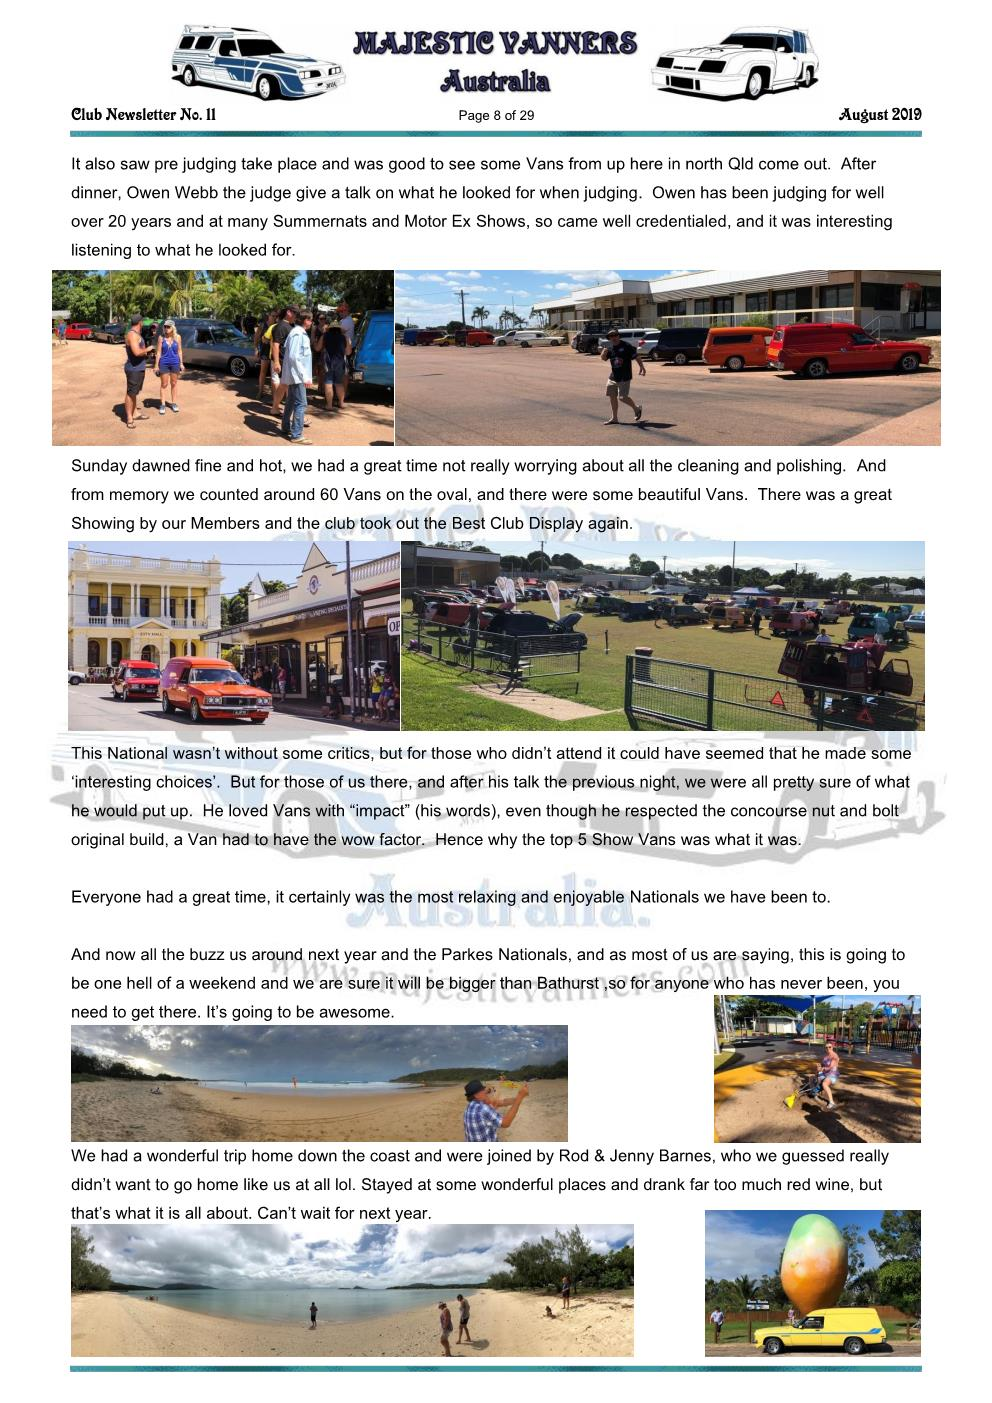 MAJESTIC VANNERS Newsletter Issue No: 11 August 2019 Mv_new47